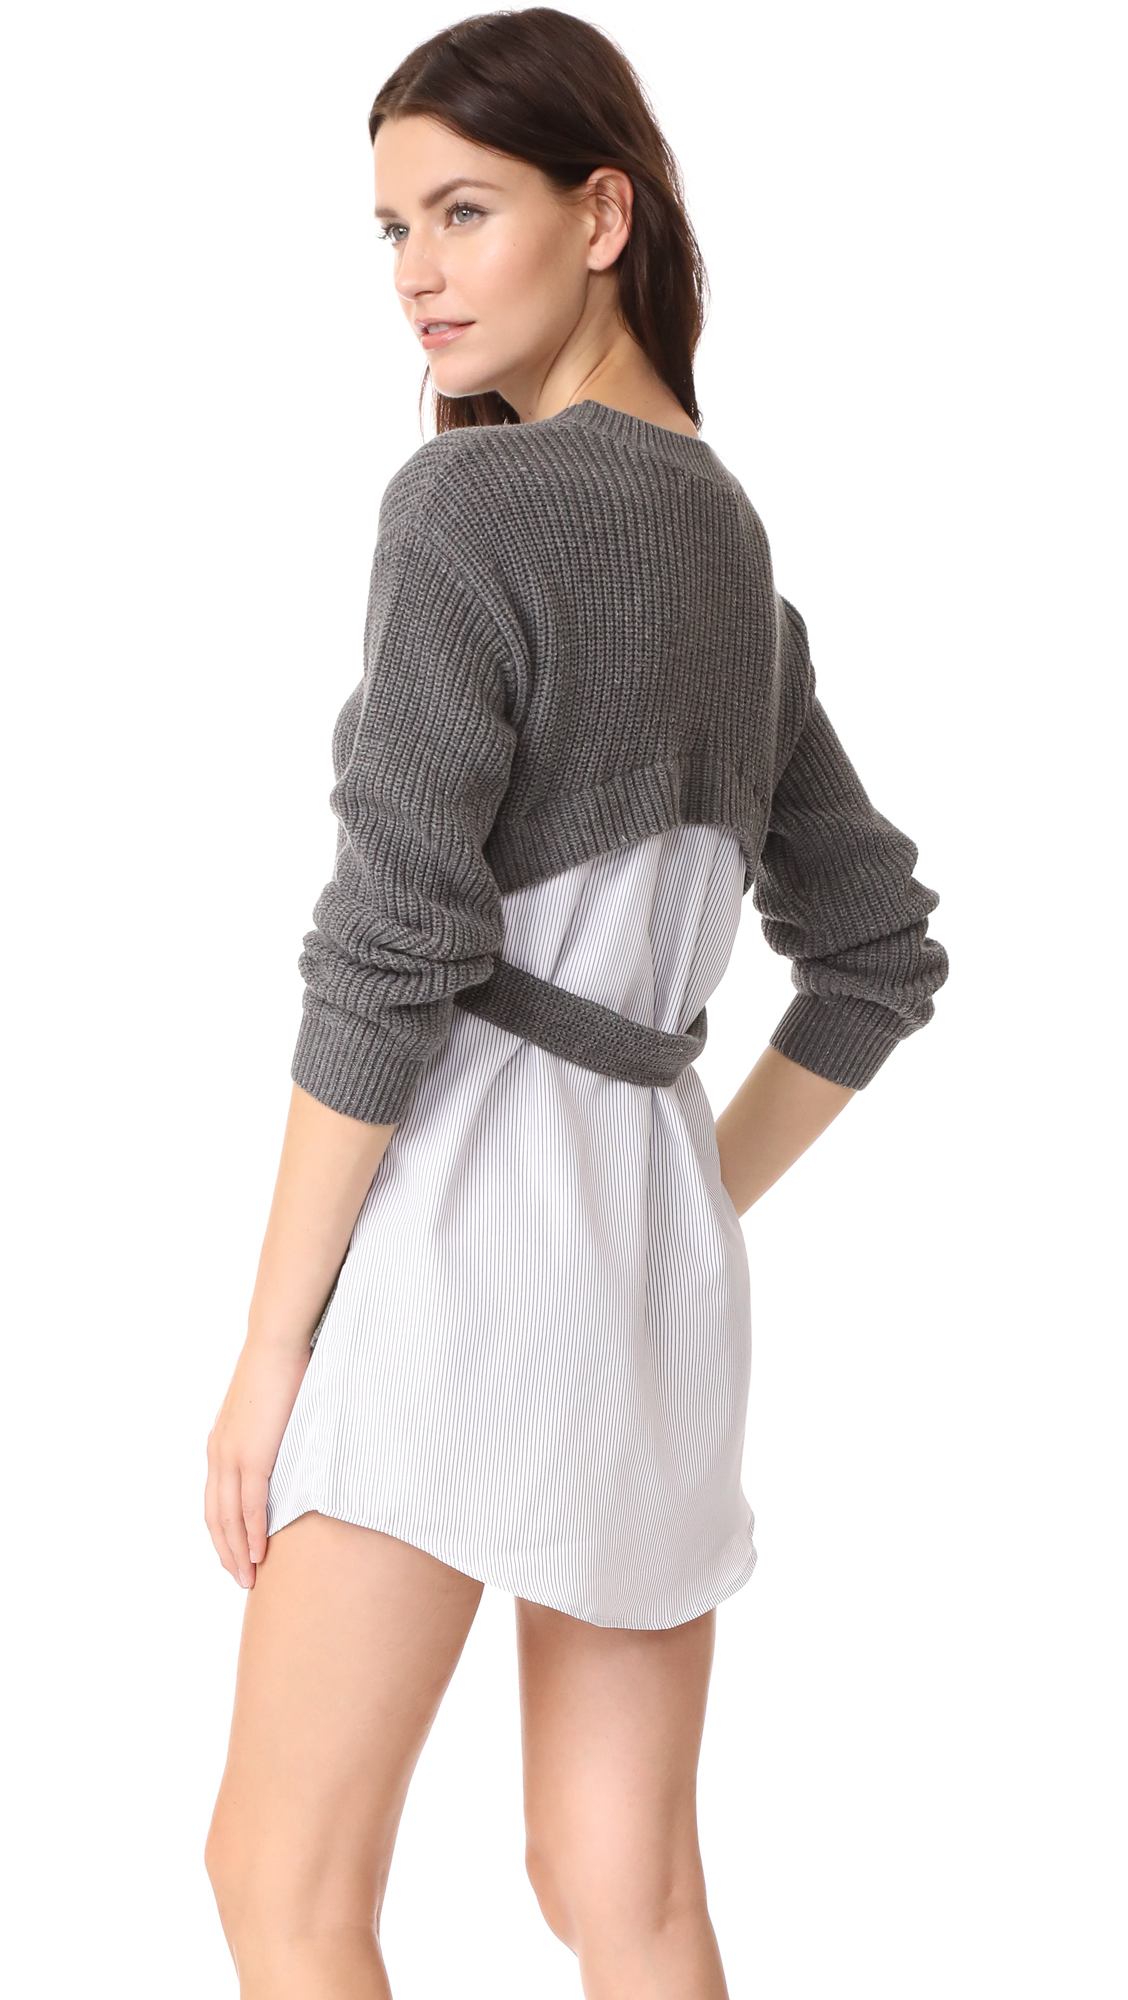 ENGLISH FACTORY Knit Dress With Combo Stripe - Heather Grey